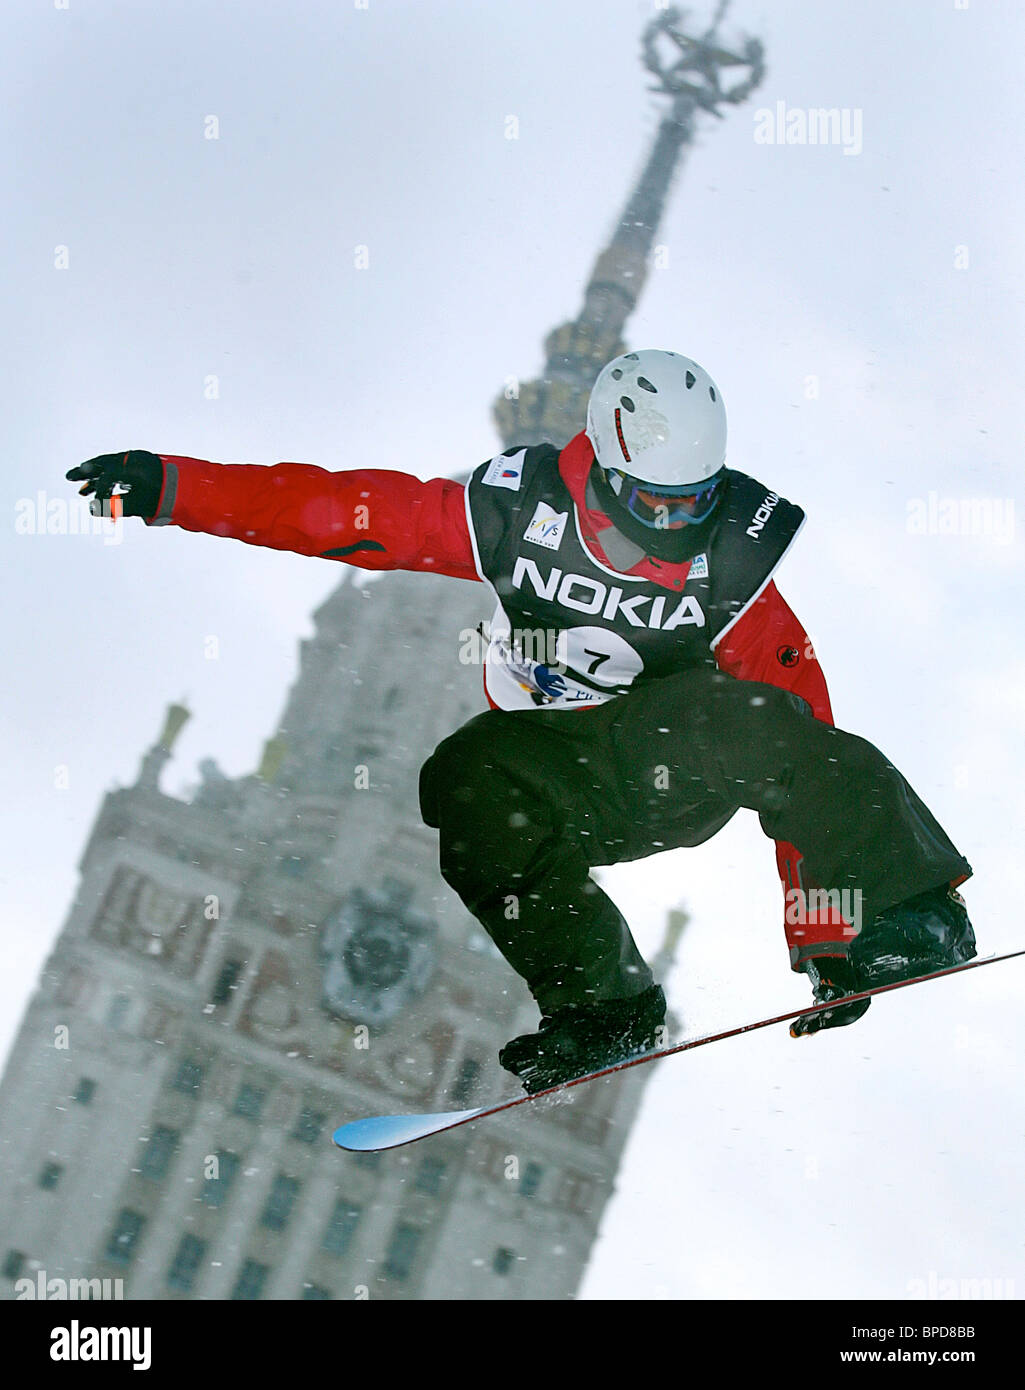 FIS Snowboard World Cup event - Stock Image